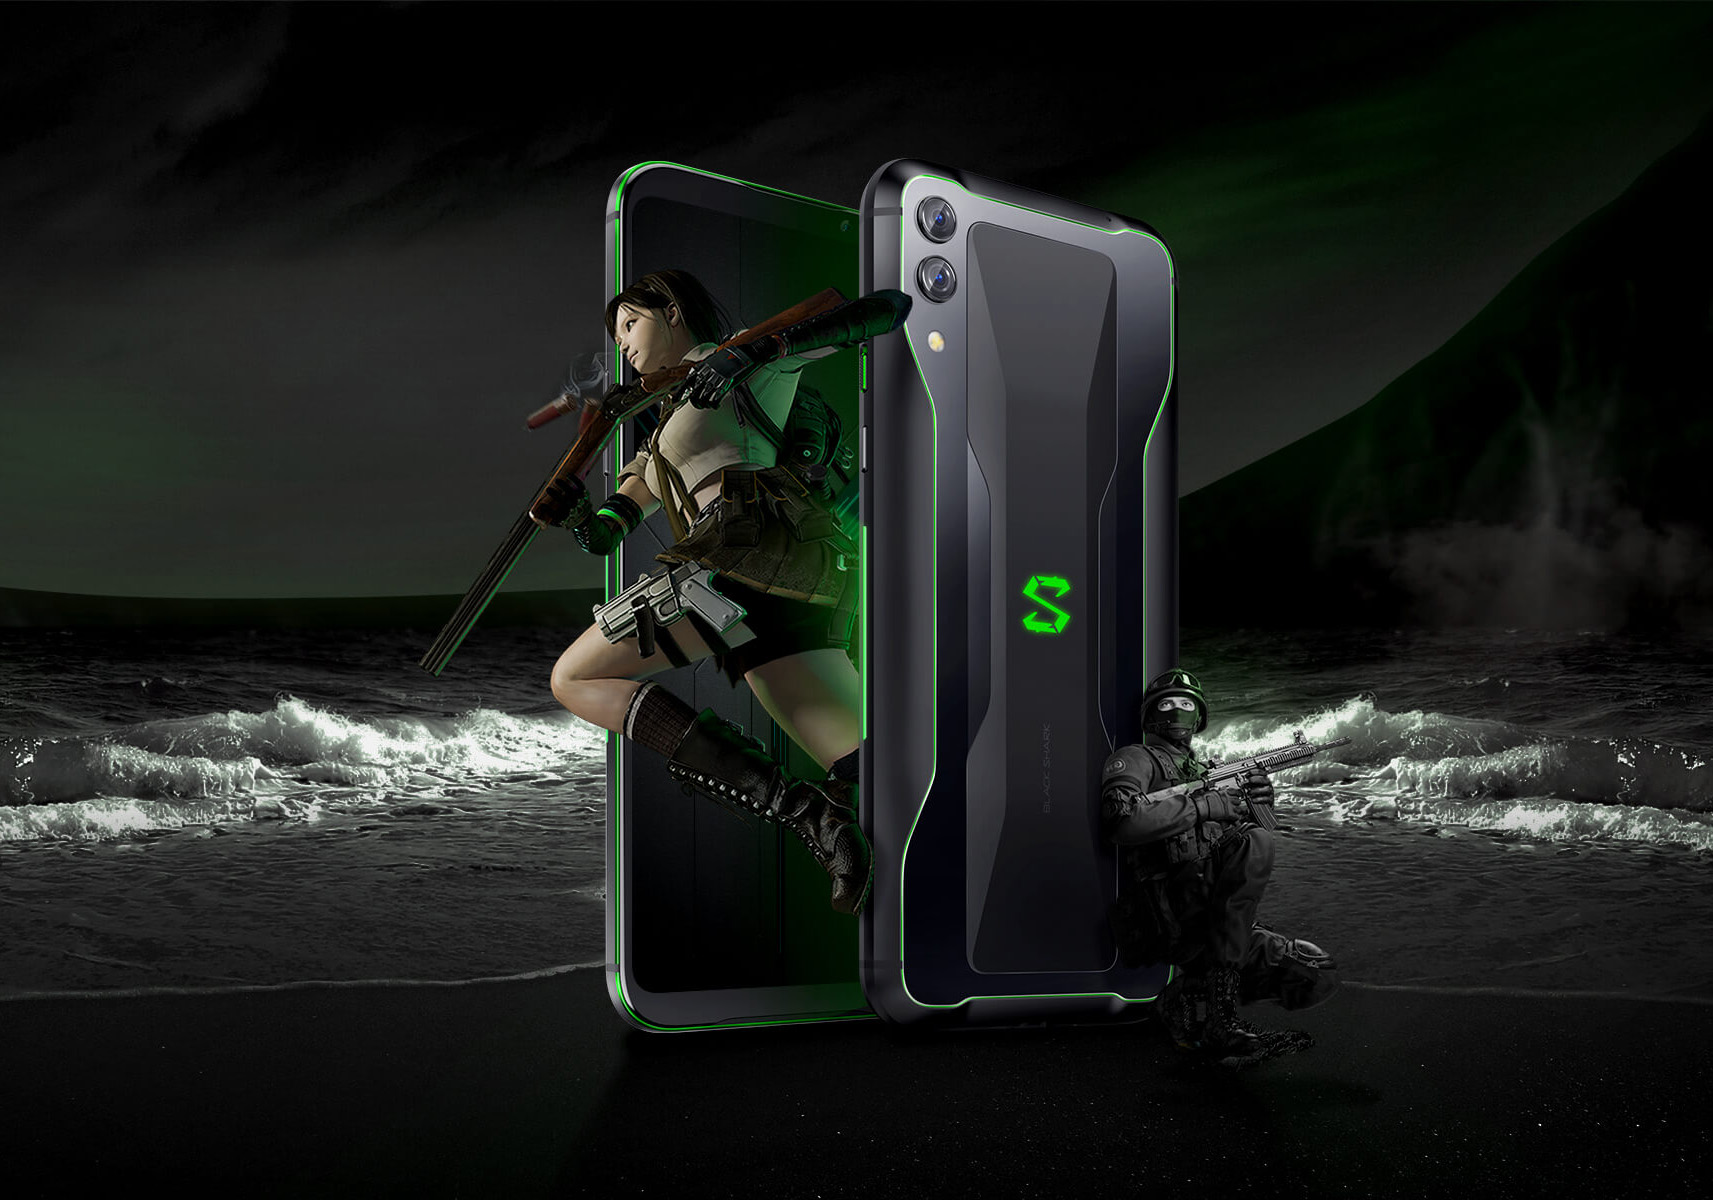 Xiaomi Launches Black Shark 2 Gaming Smartphone with Snapdragon 855 SoC